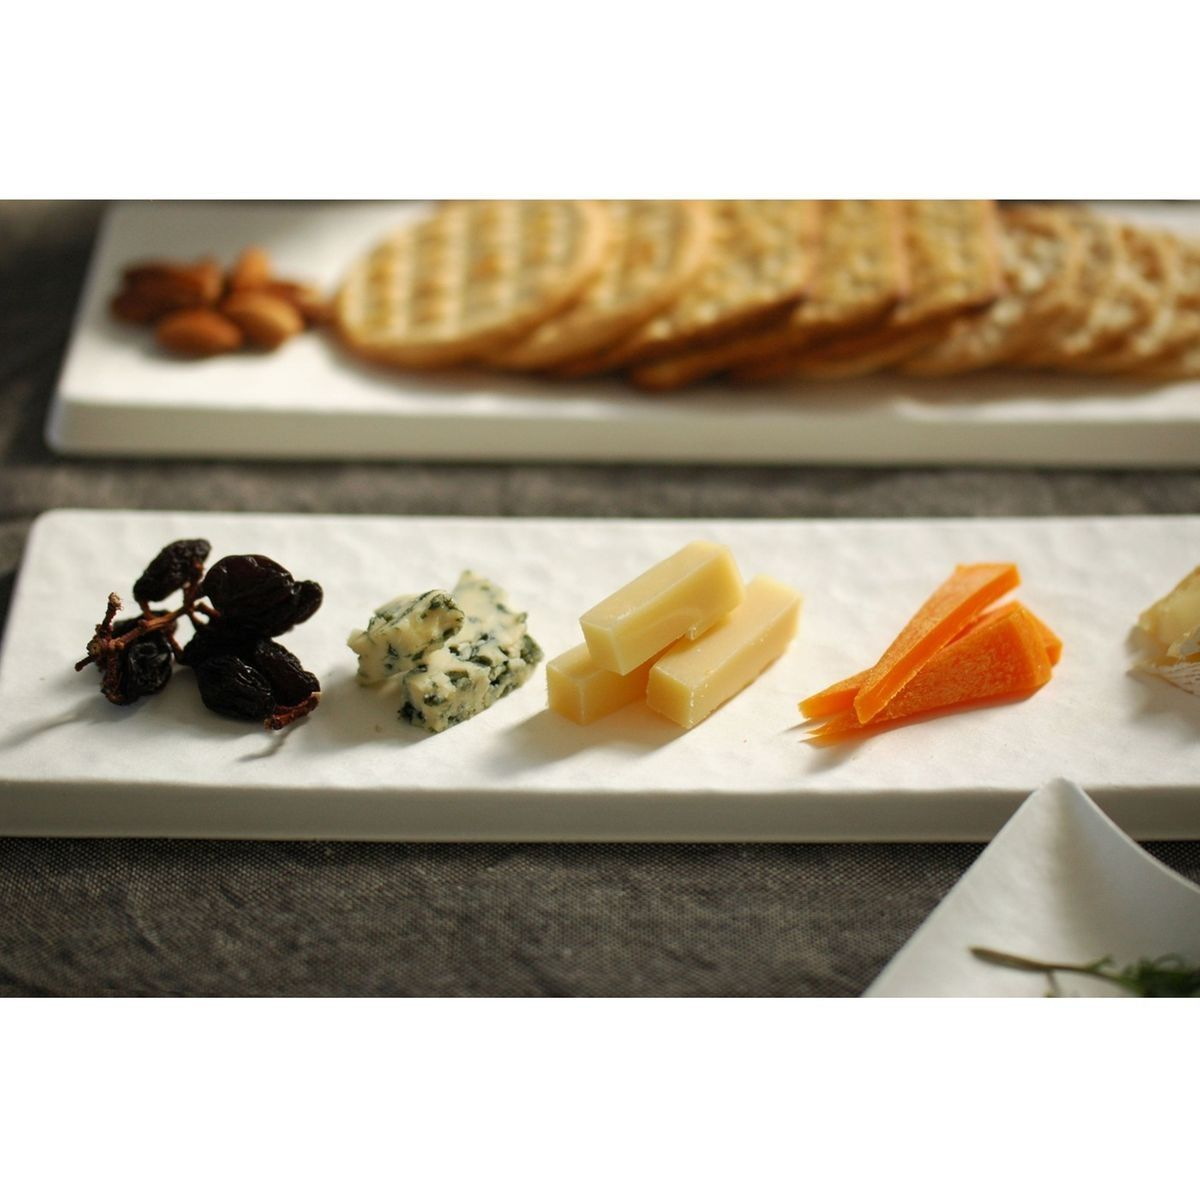 Wasara 8 Plateaux Rectangulaires Jetables Taille 300 X 100 mm